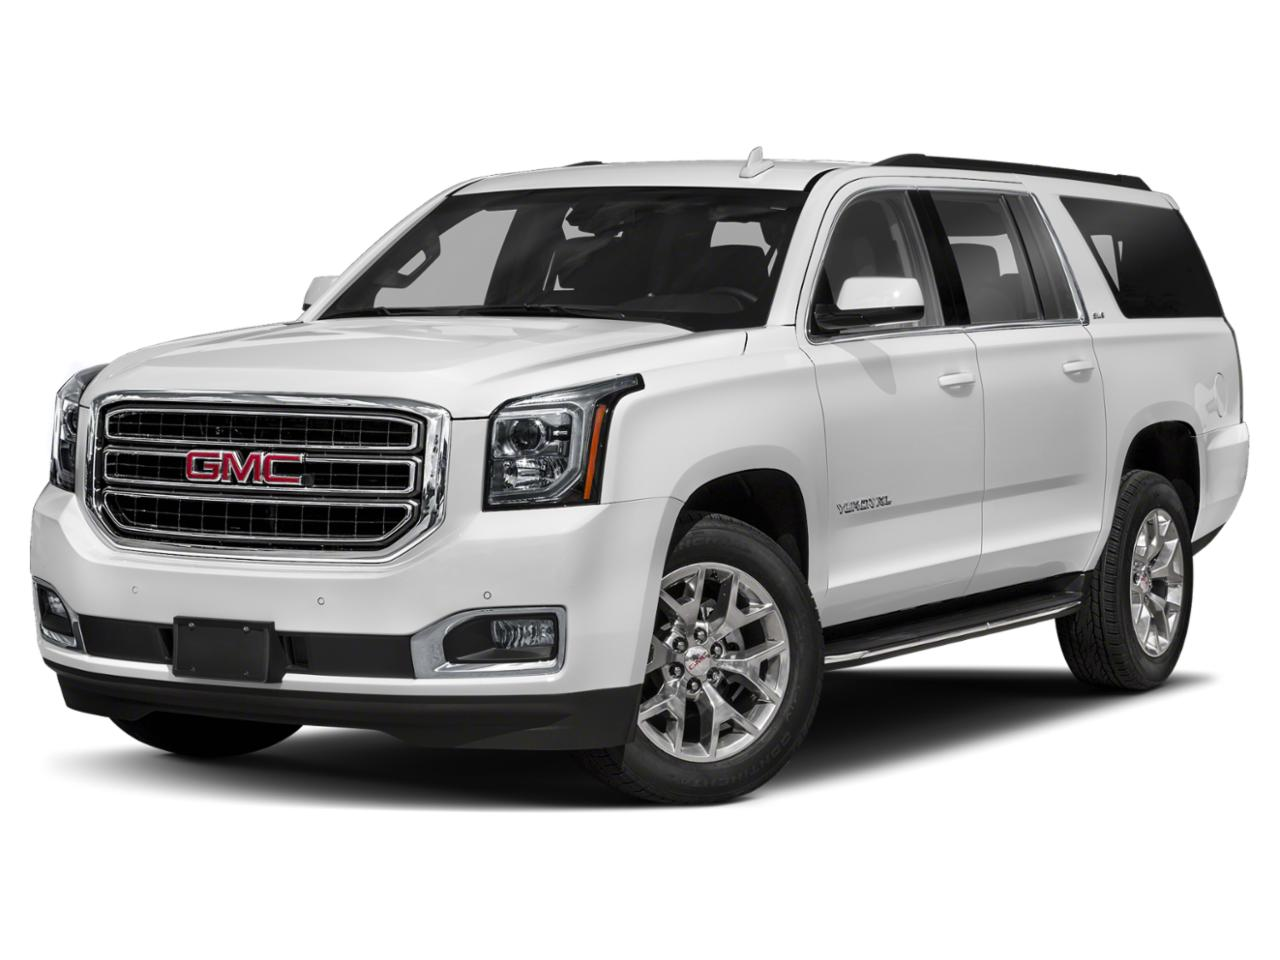 2020 GMC Yukon XL Vehicle Photo in Emporia, VA 23847